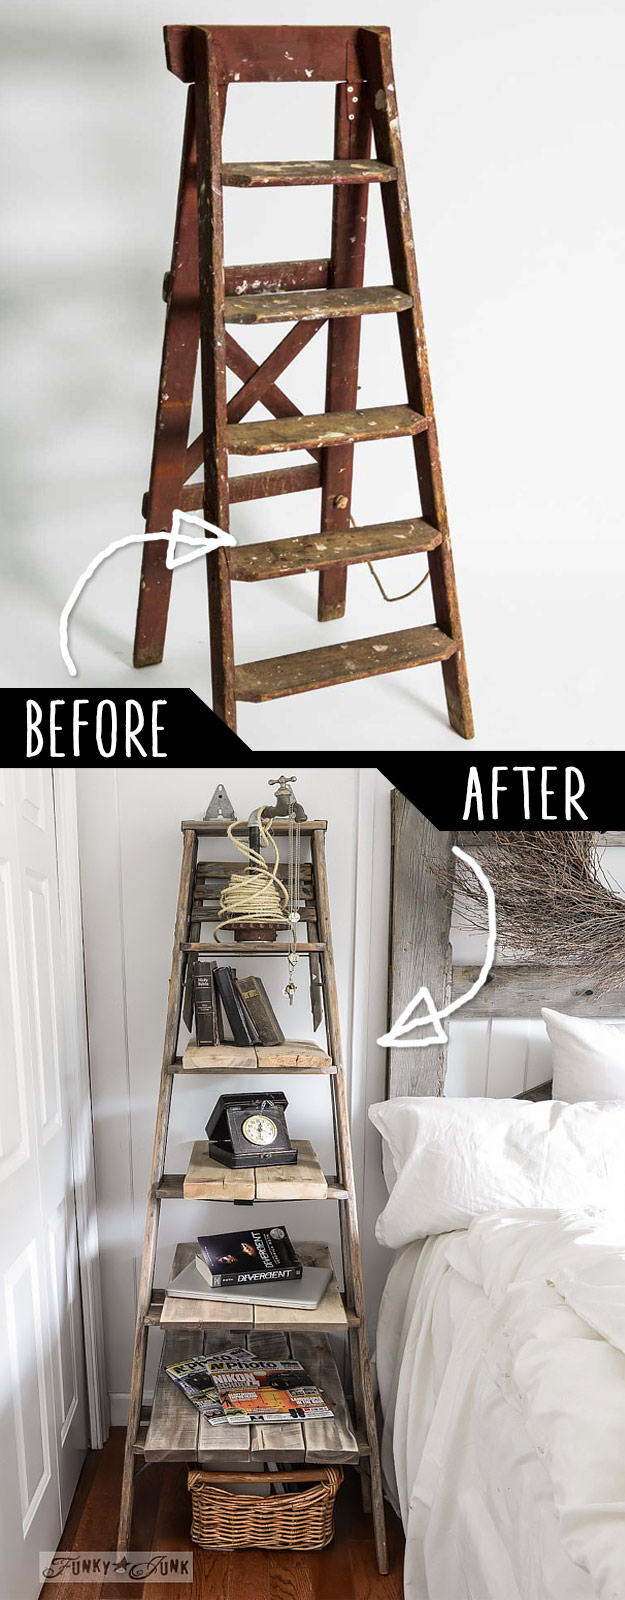 DIY Furniture Hacks | Step Ladder Side Table | Cool Ideas For Creative Do  It Yourself